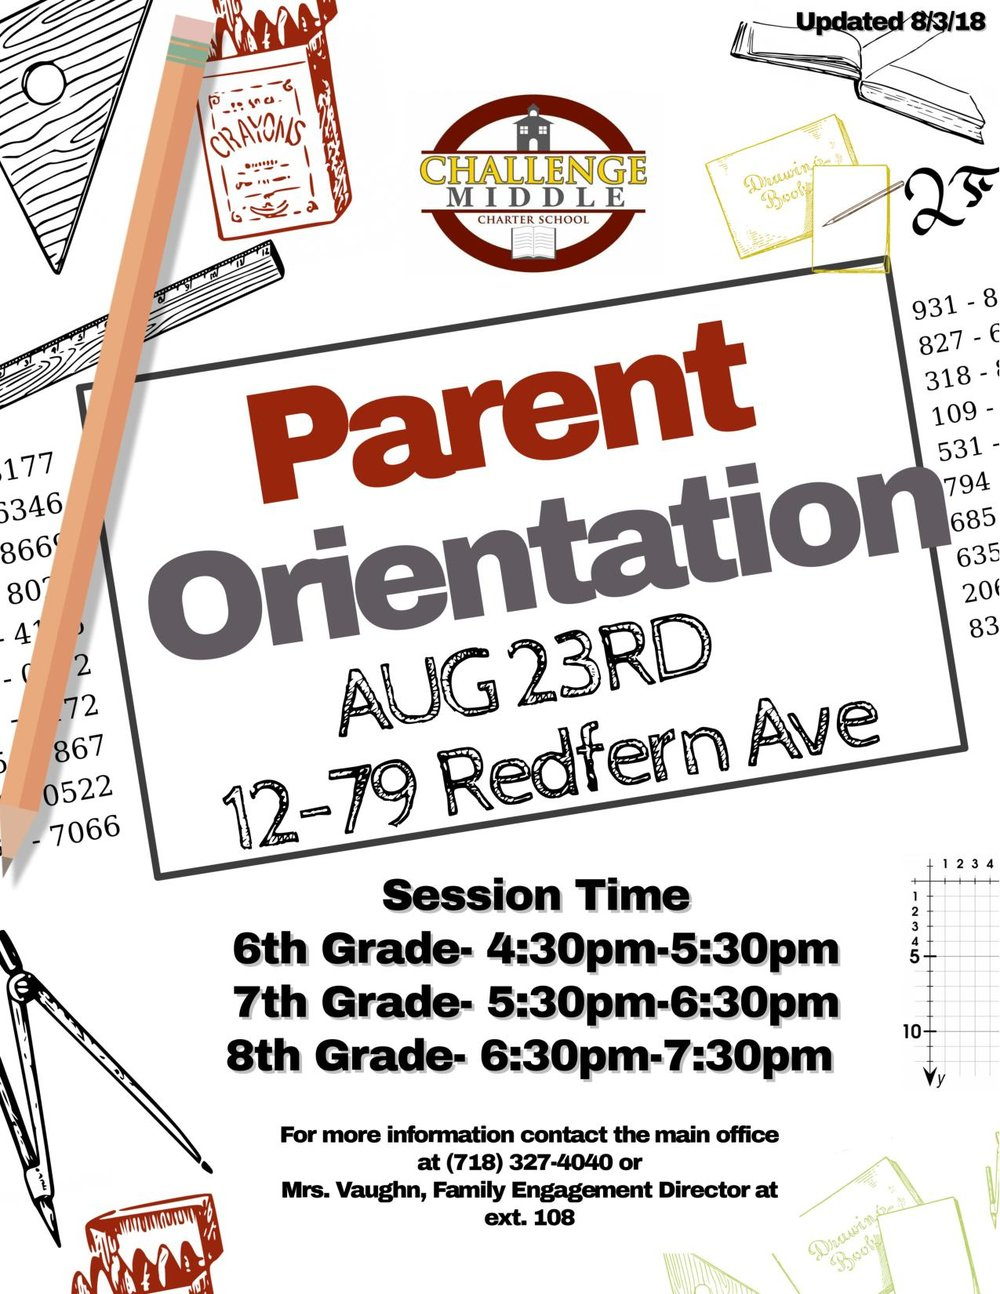 CCMS Orientation Flyer UPdated-page-001 (1).jpg